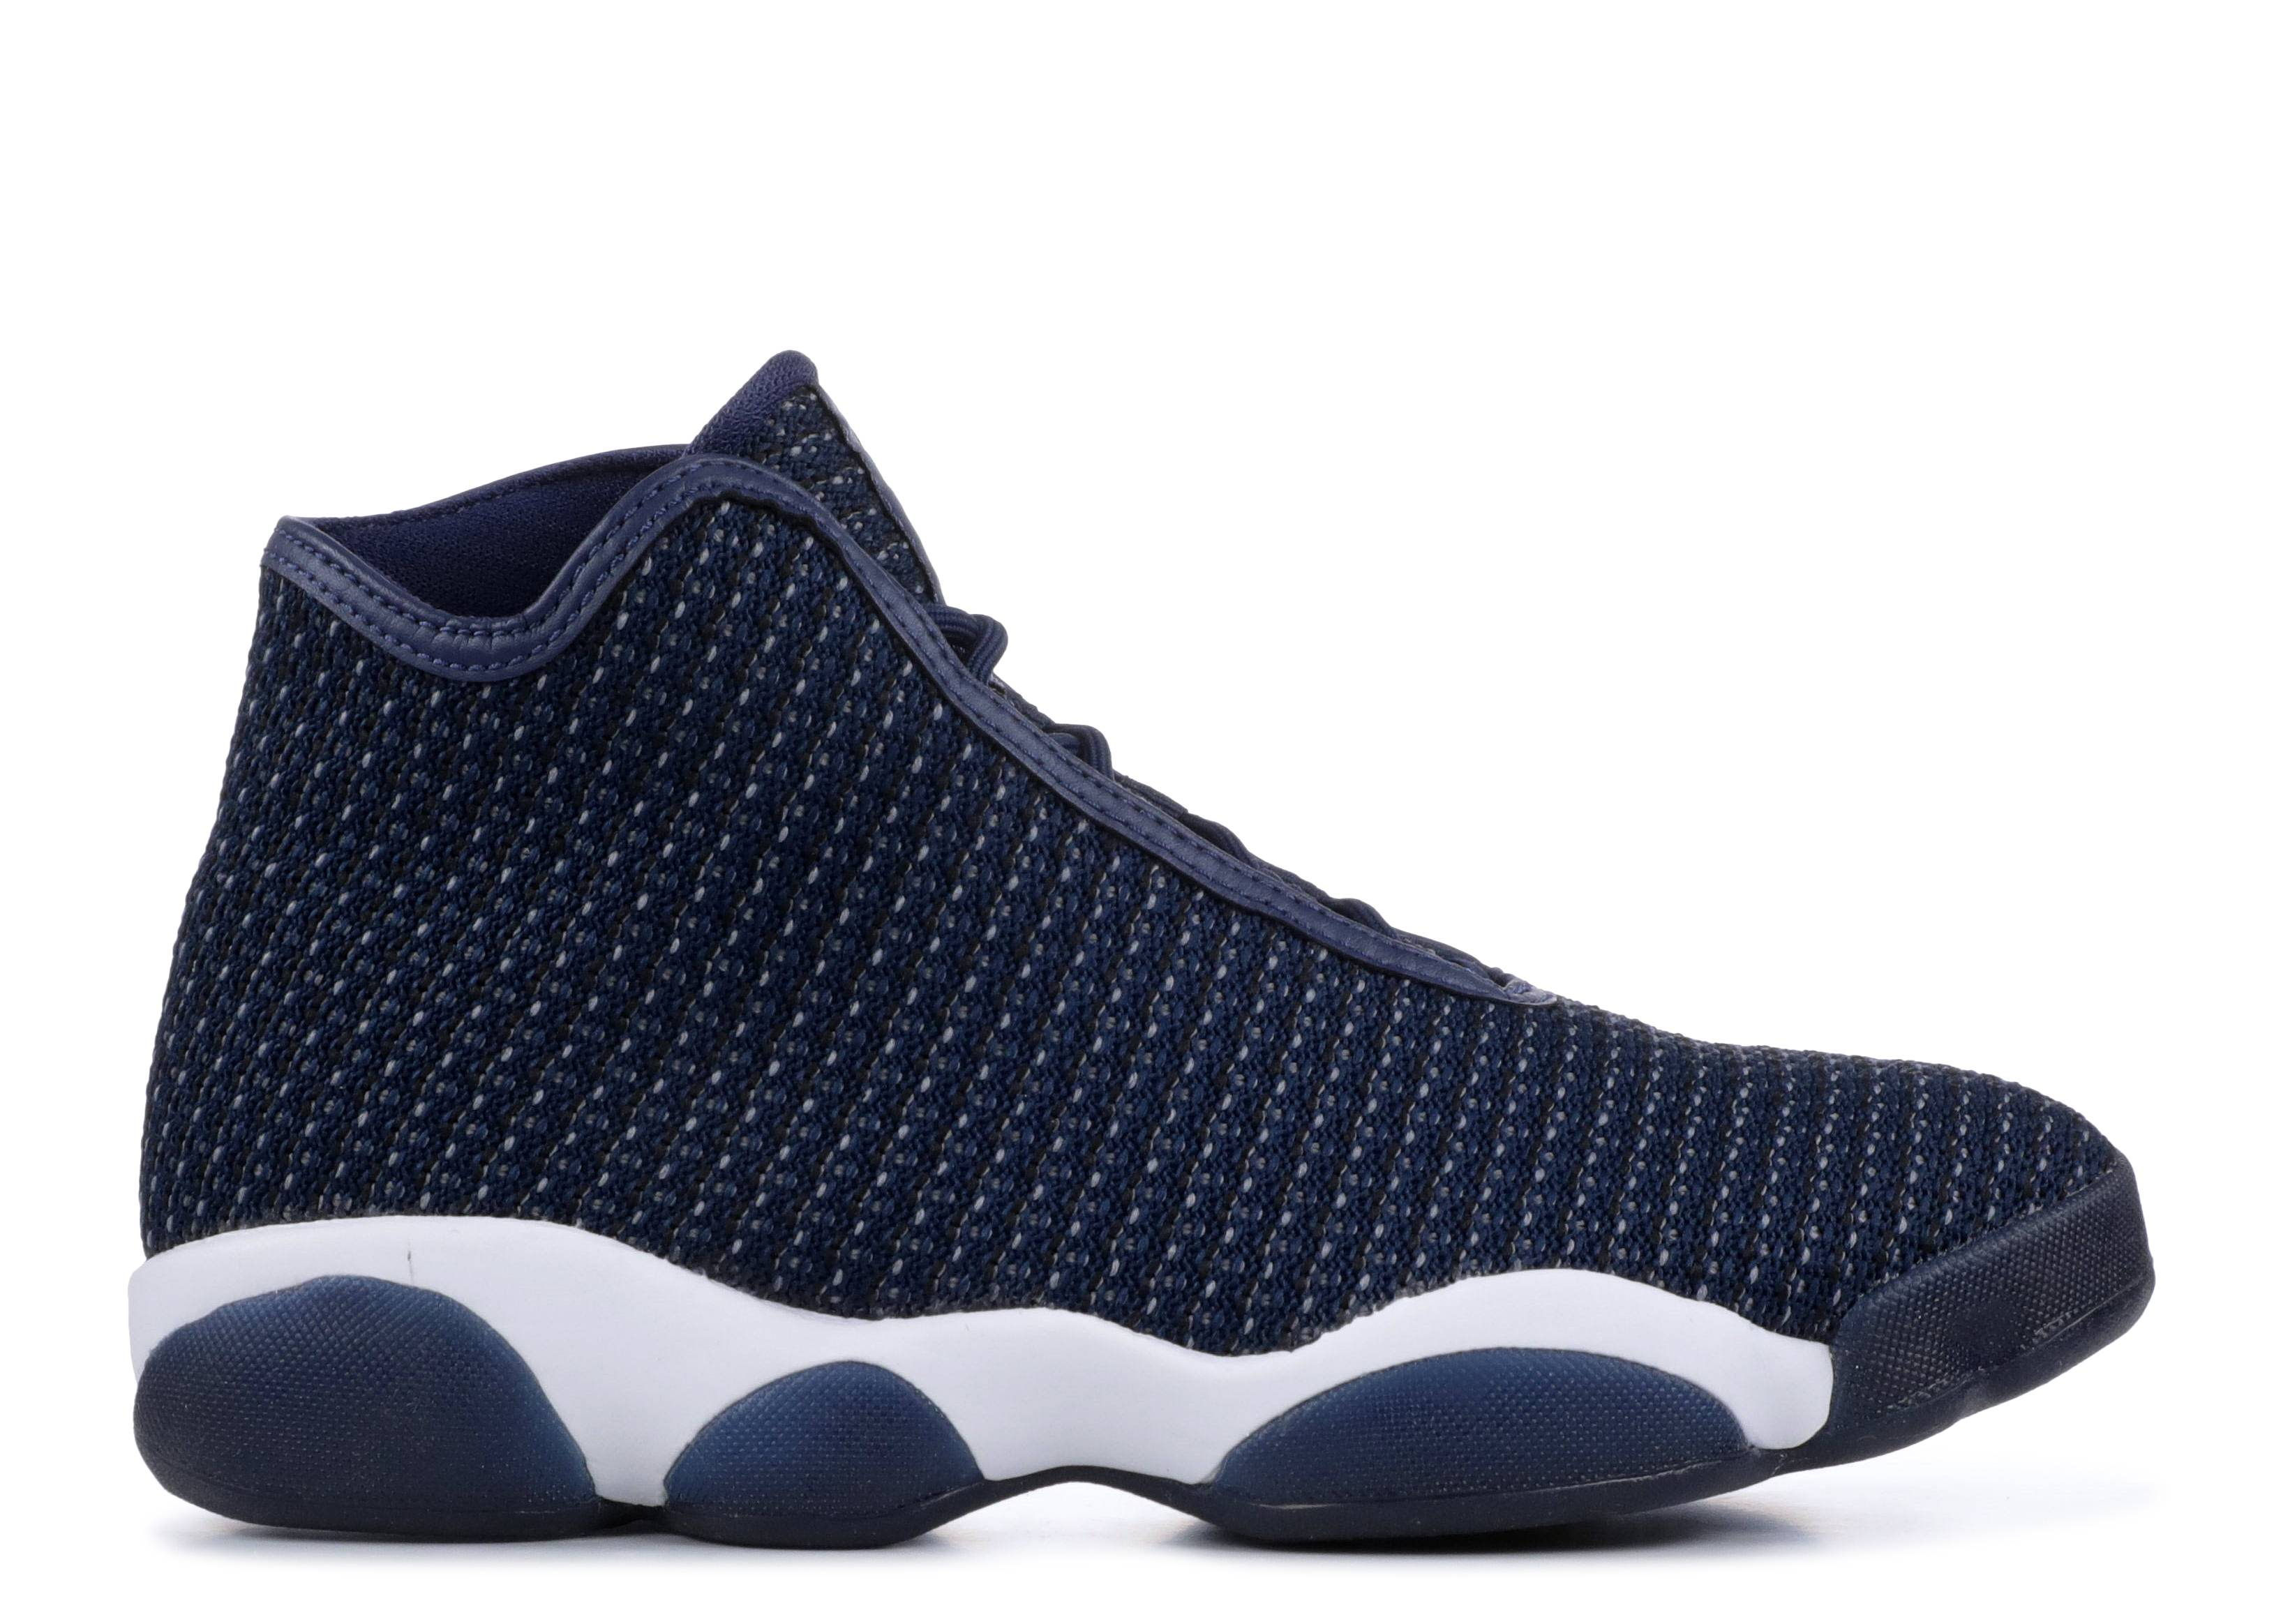 new concept 524a5 b1173 Jordan Horizon - Air Jordan - 823581 401 - midnight navy white ...